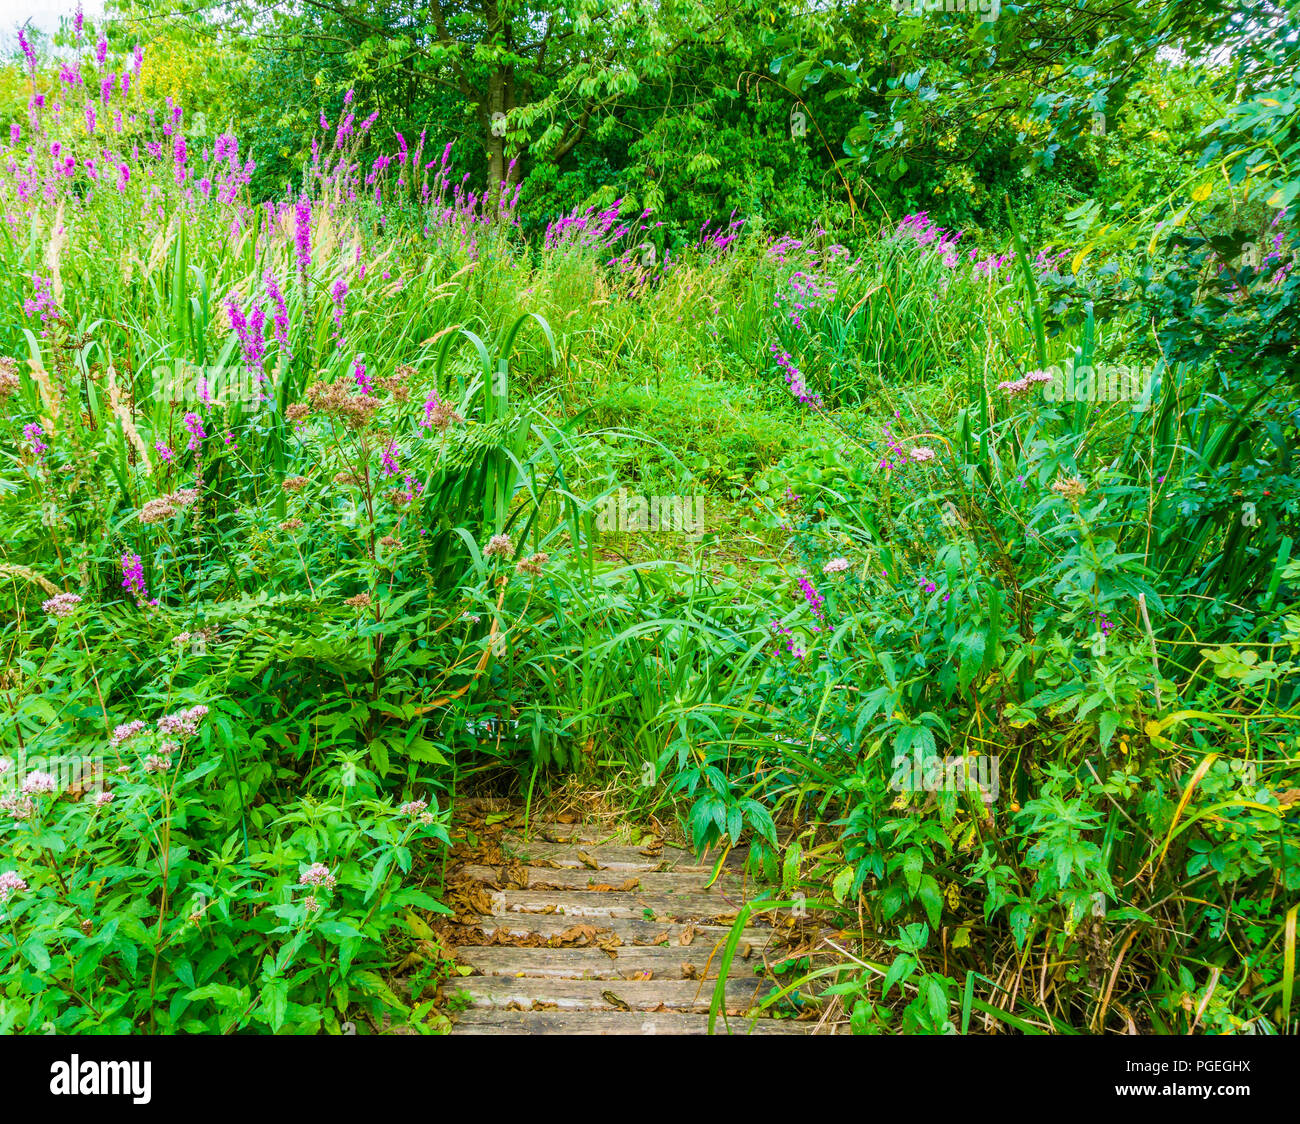 green forest landscape with purple flowers and fully grown with plants - Stock Image